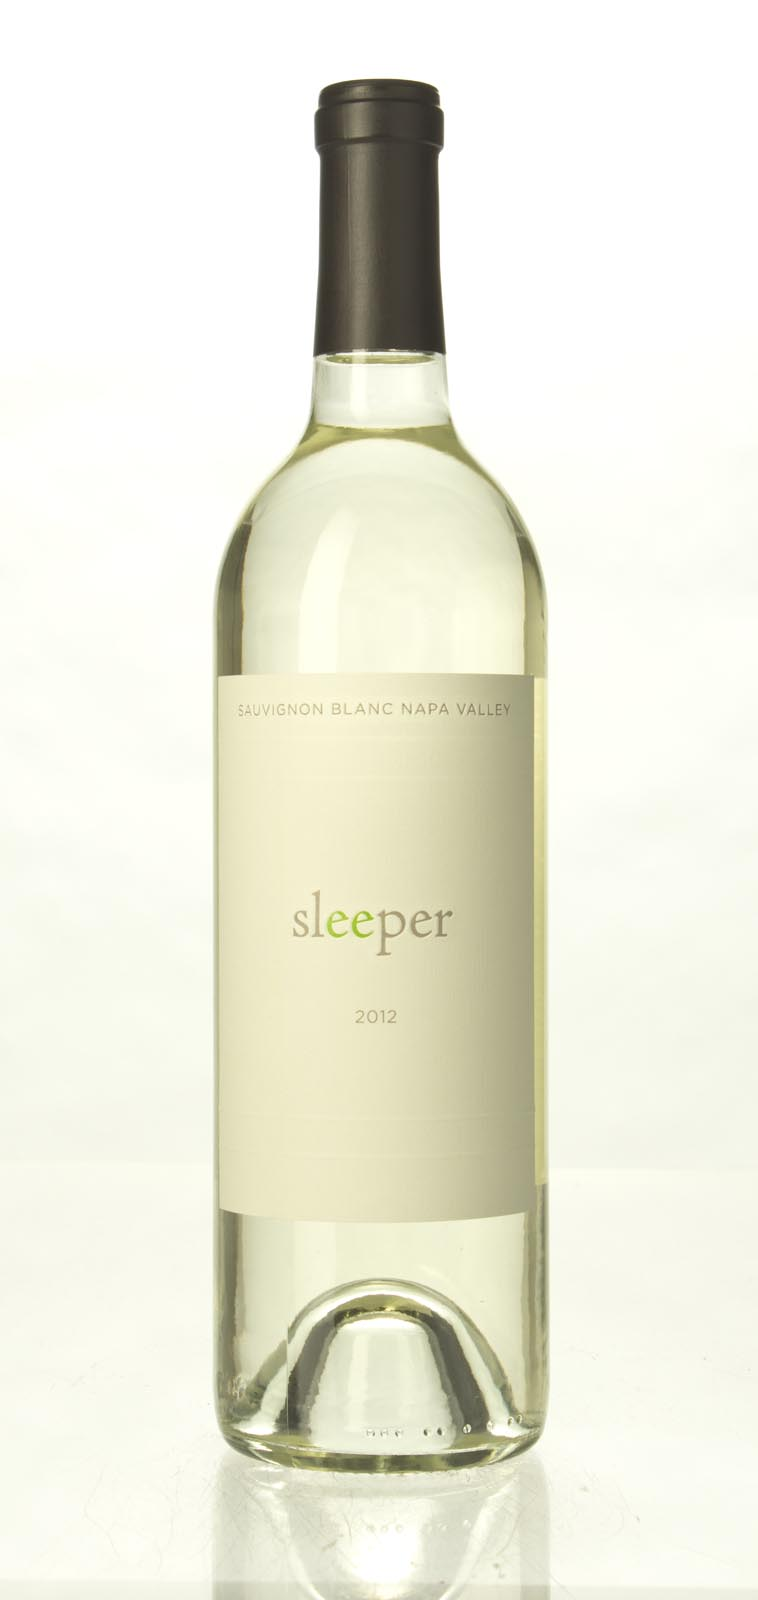 Sleeper Sauvignon Blanc Napa Valley 2012, 750ml () from The BPW - Merchants of rare and fine wines.